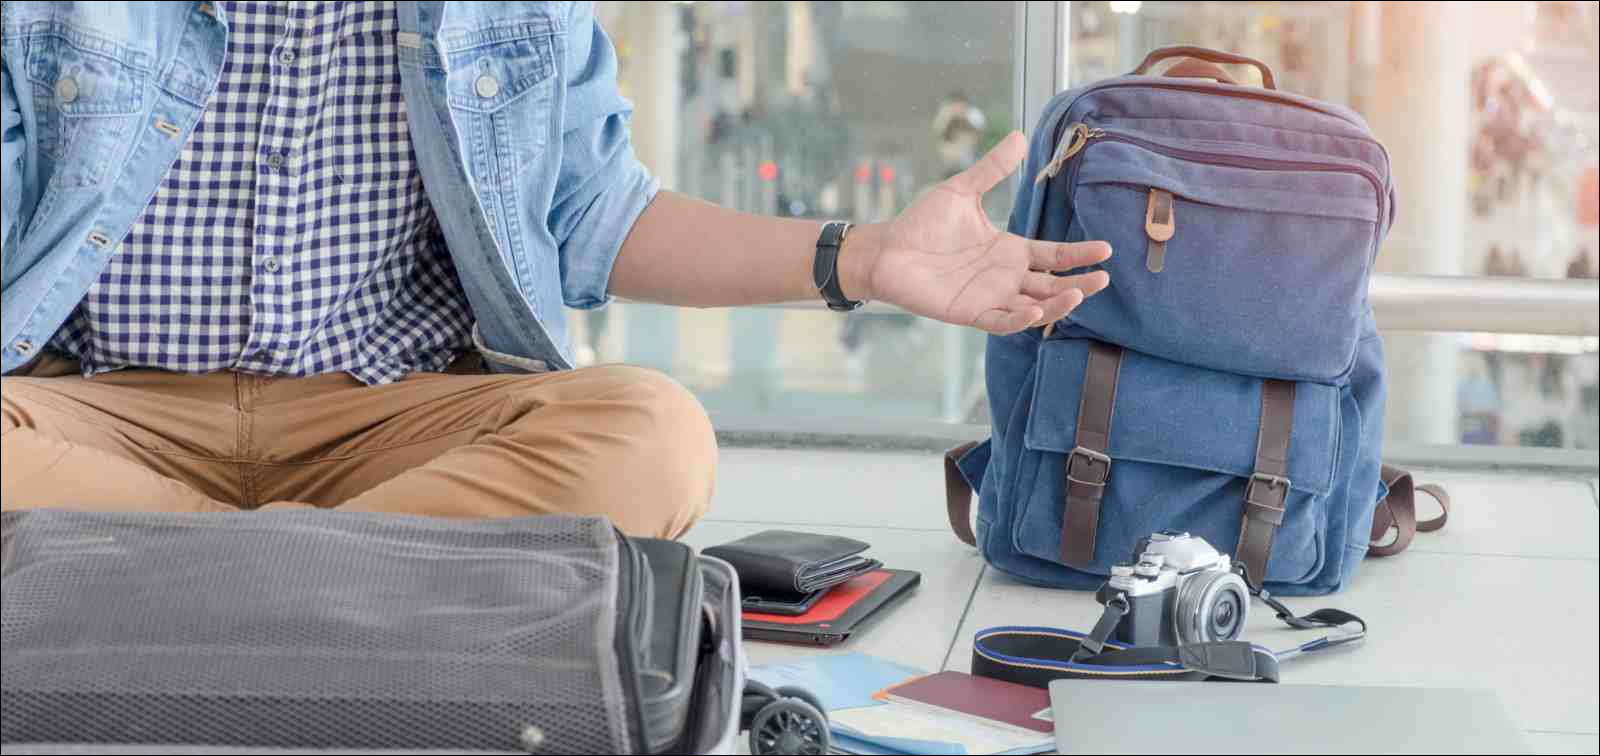 Young traveler sitting at the international airport, checking for lost or forgotten items